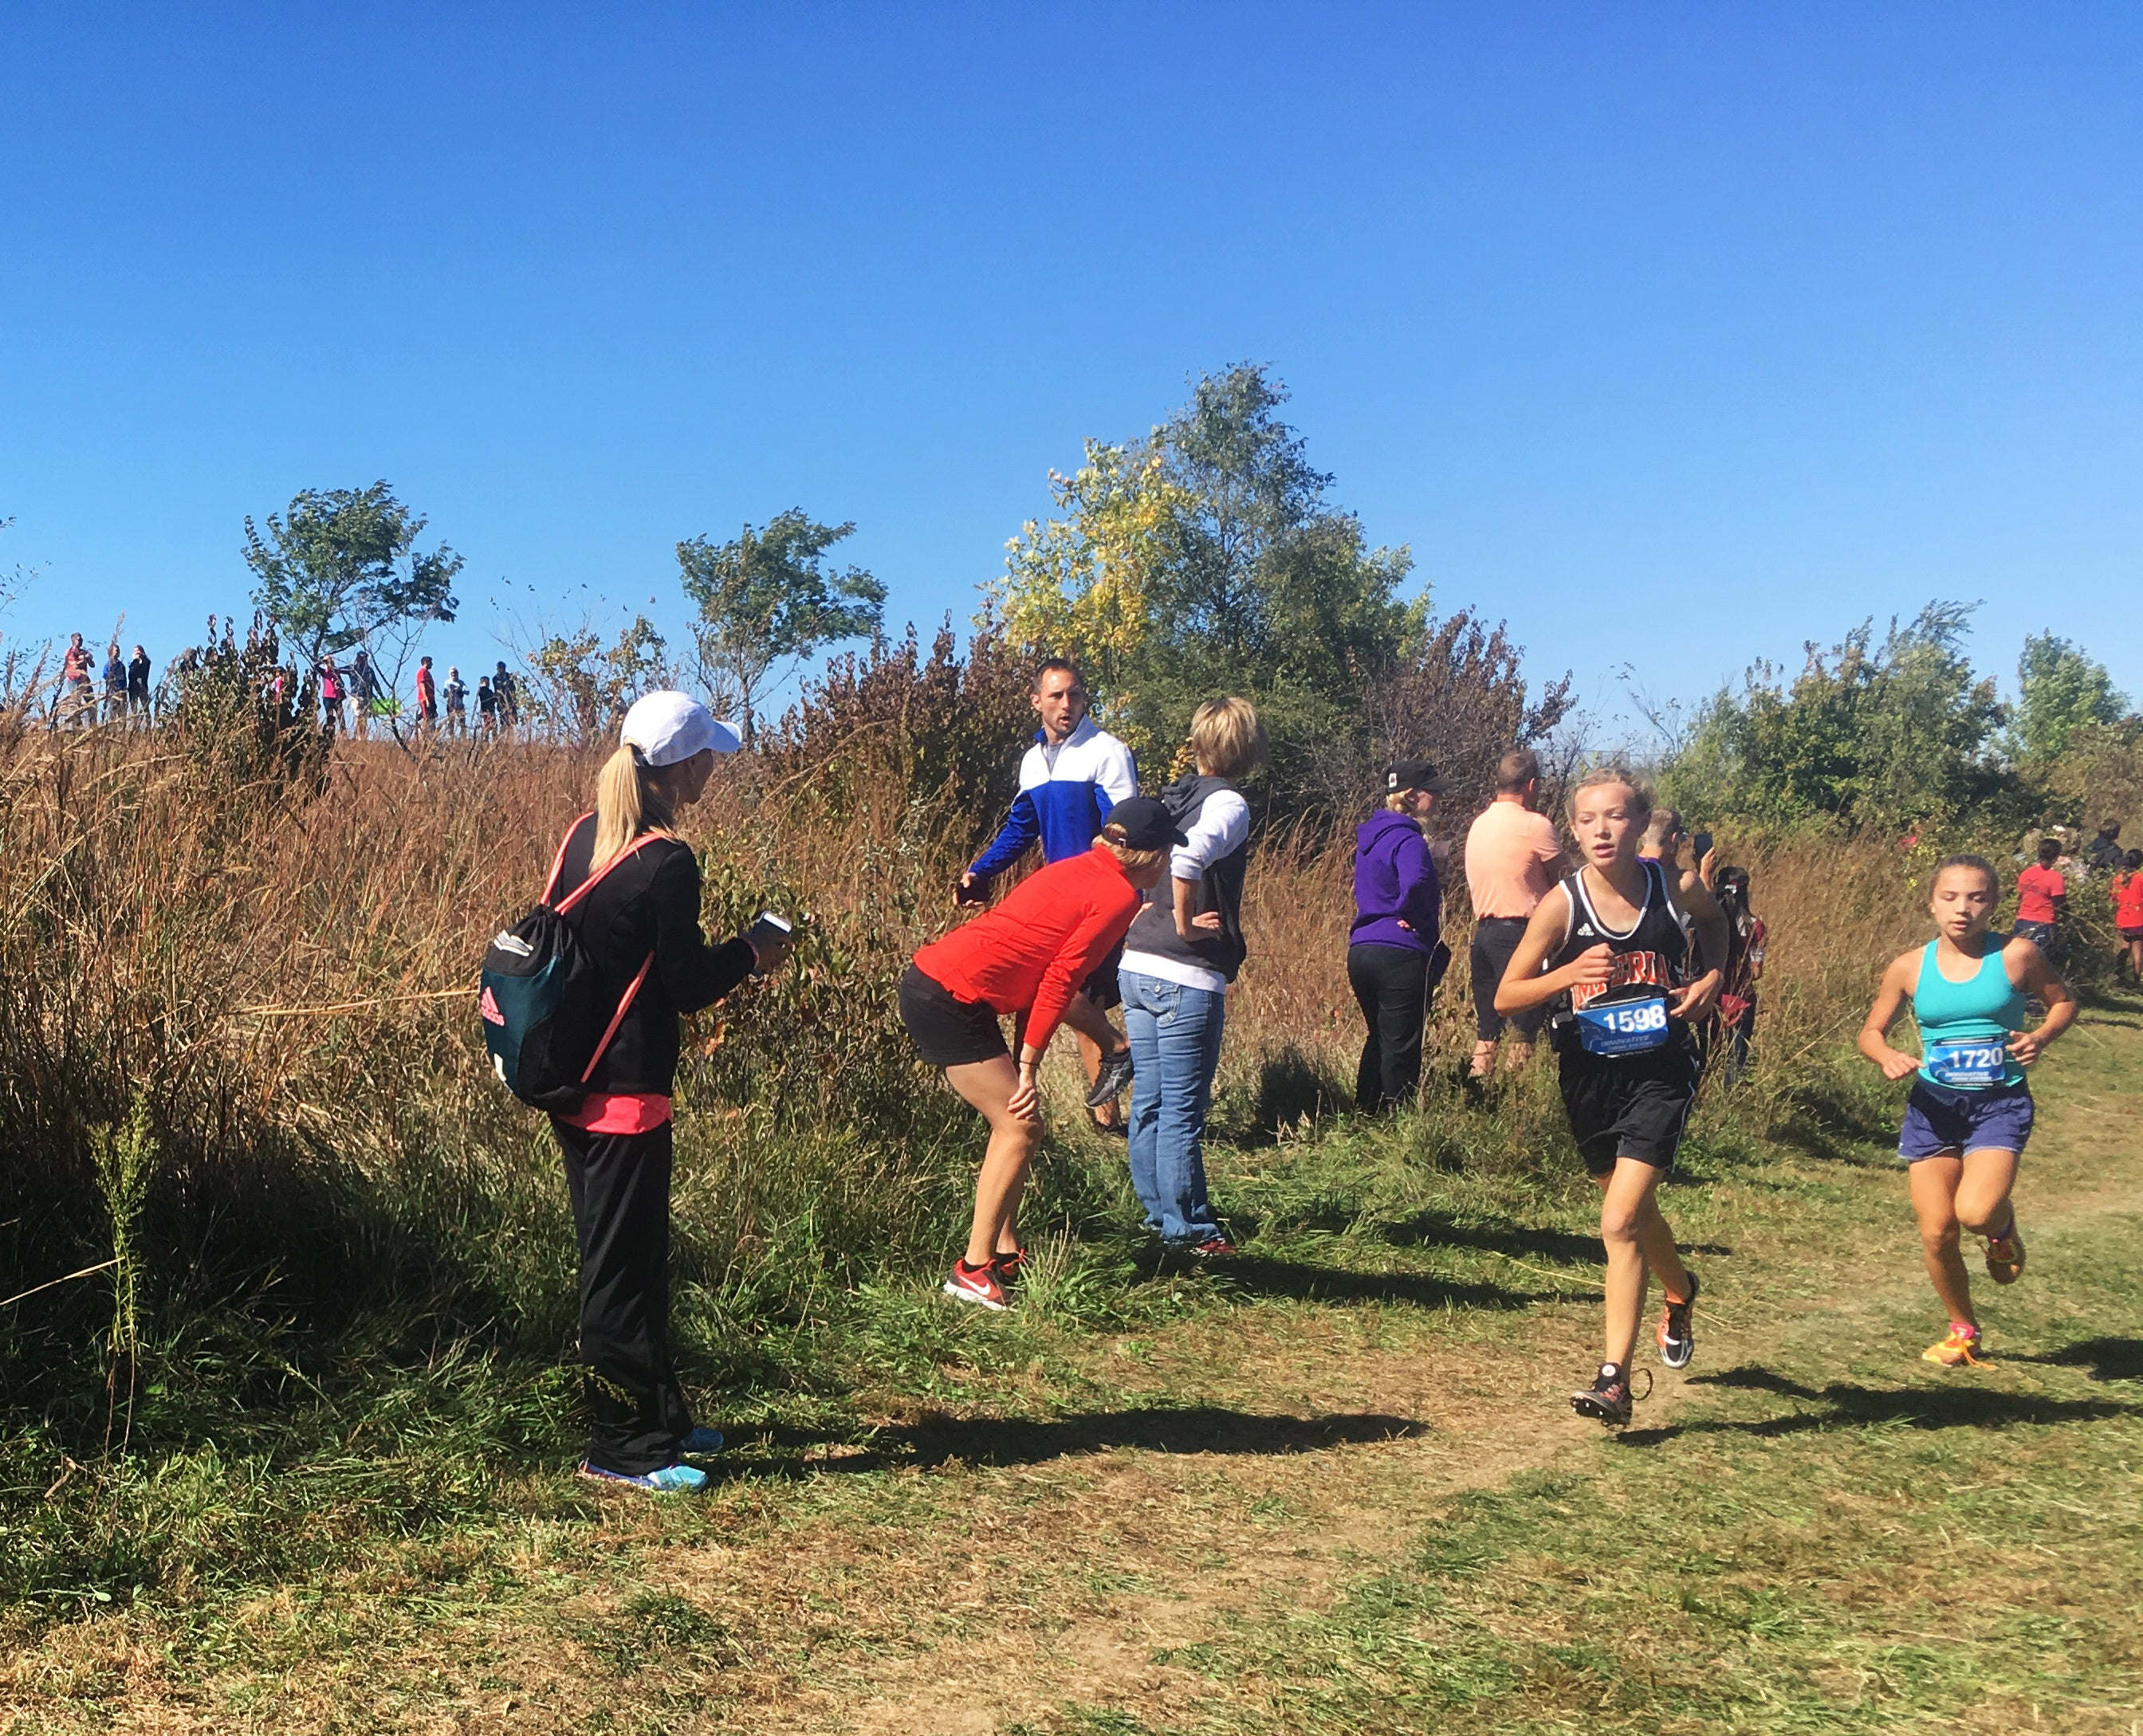 parents cheering cross country runners